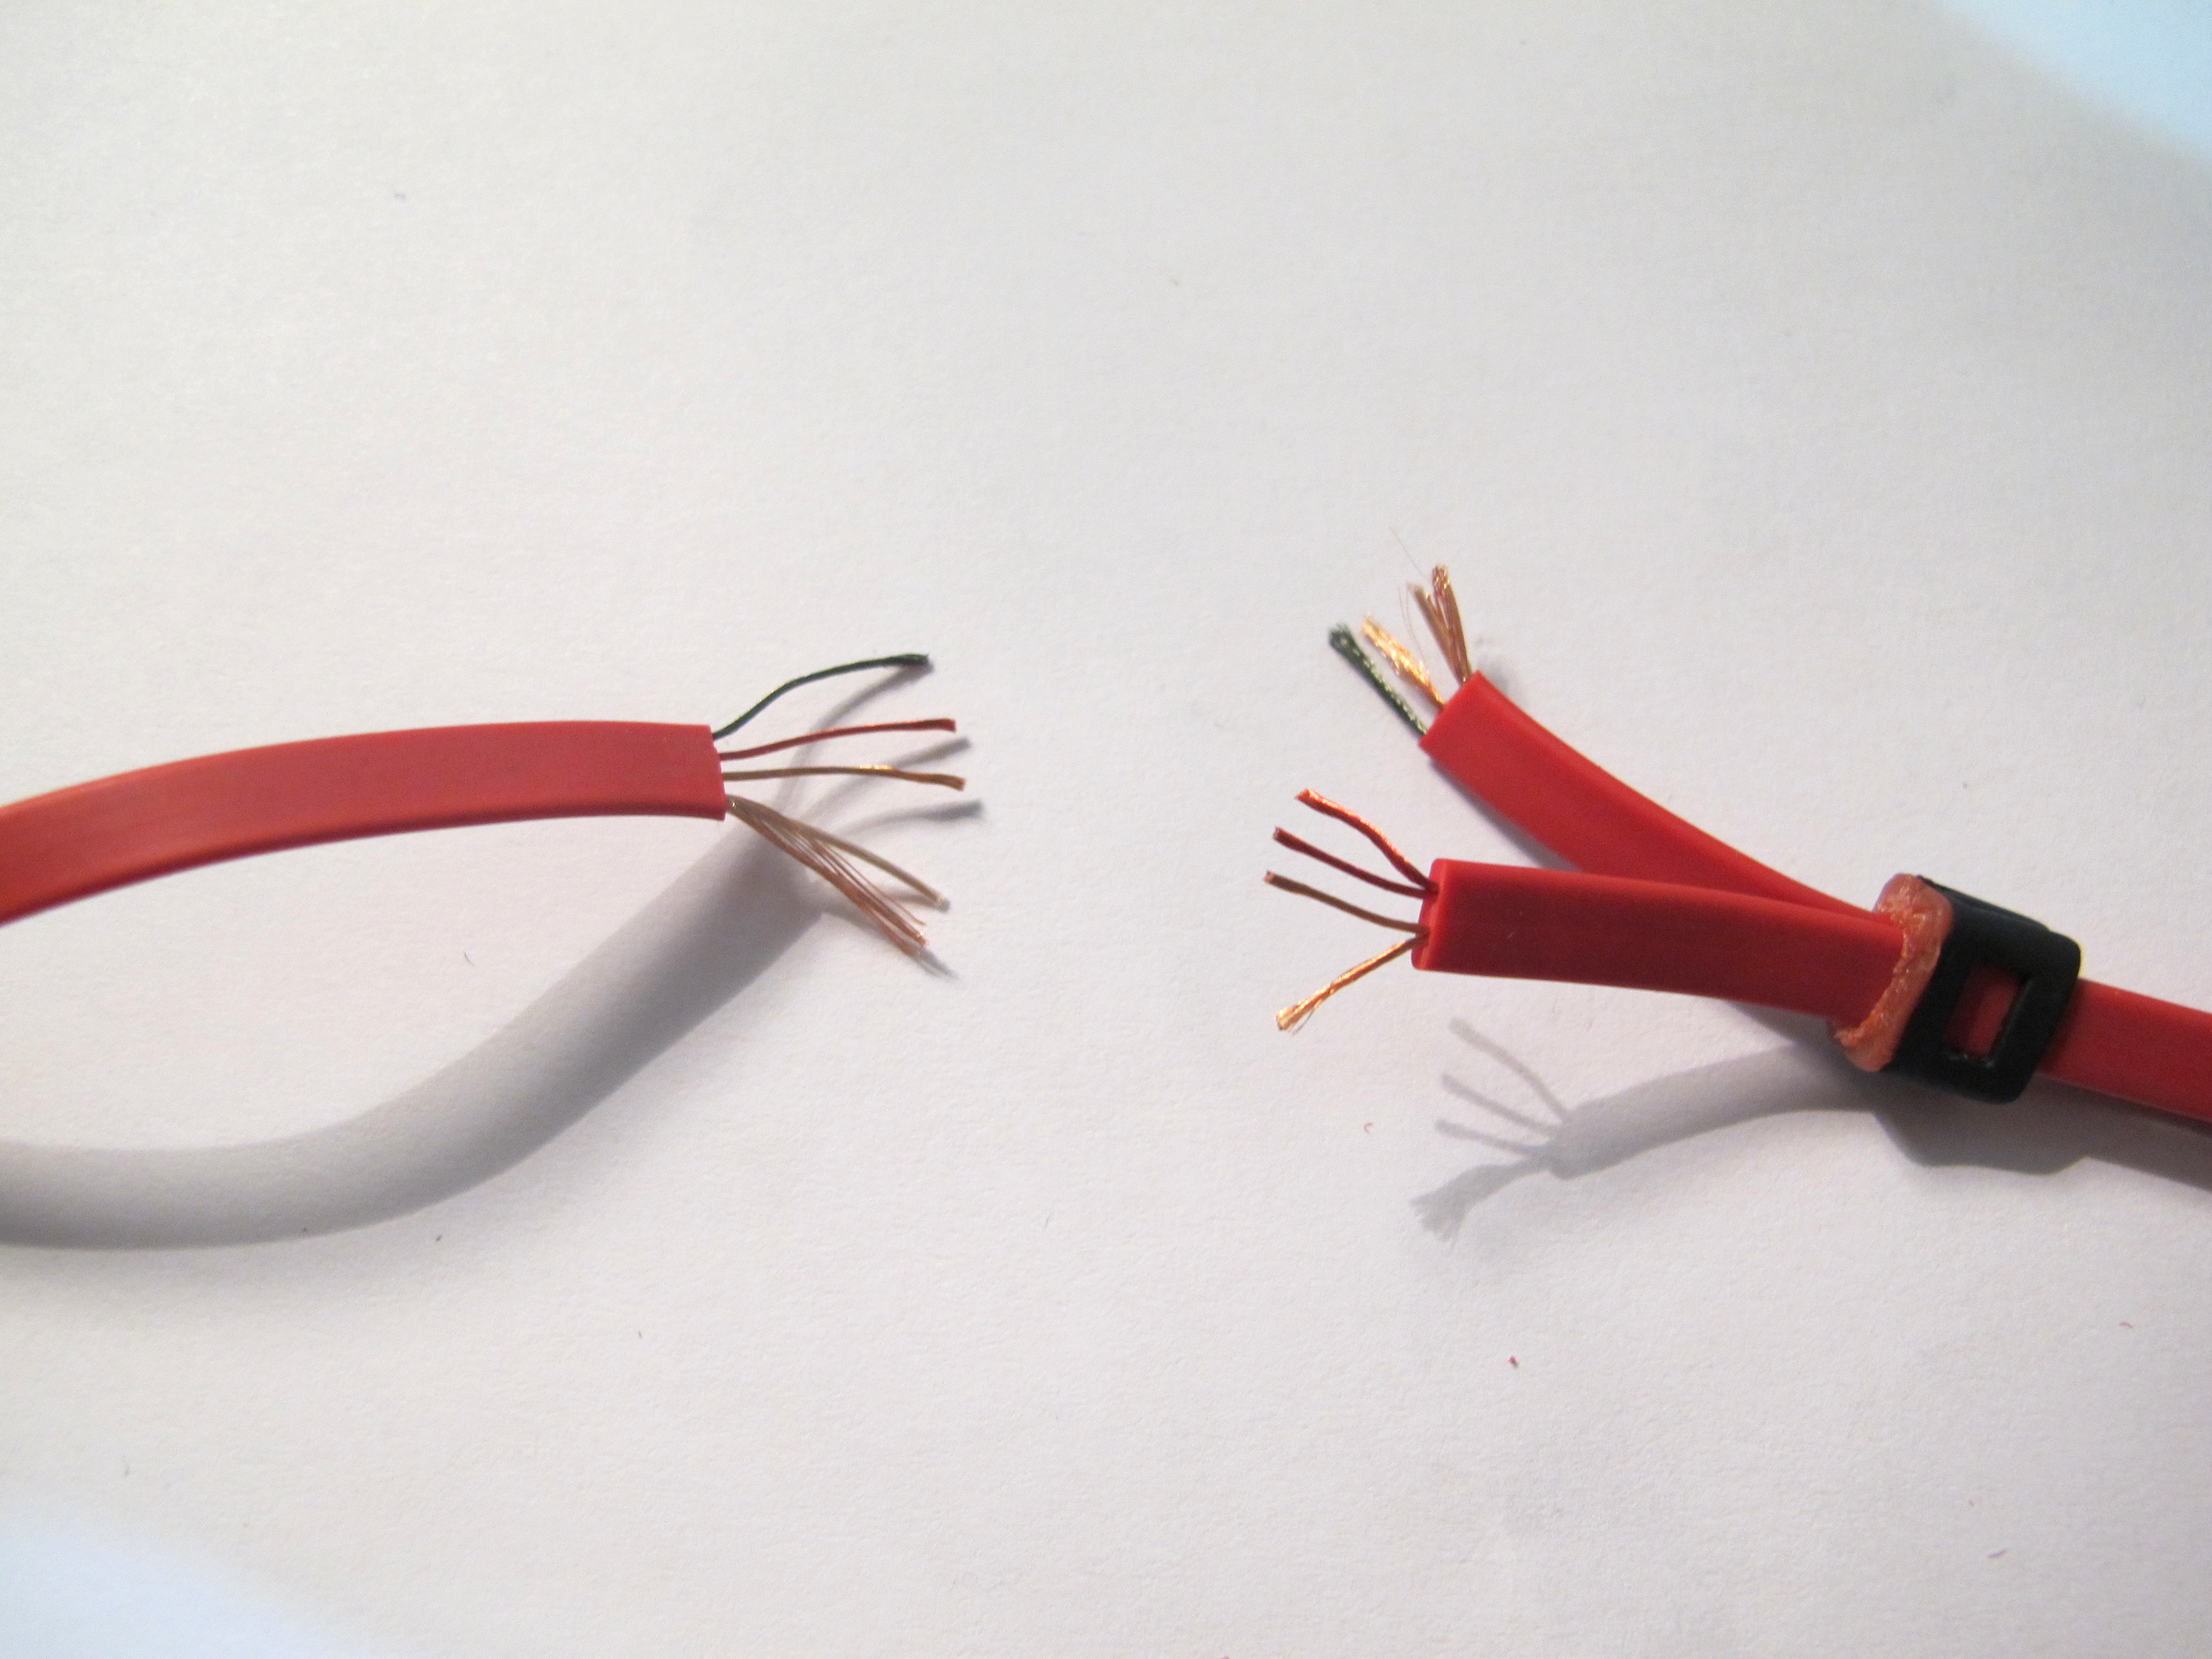 how to repair busted headphones 8 steps pictures prepare wires for ering